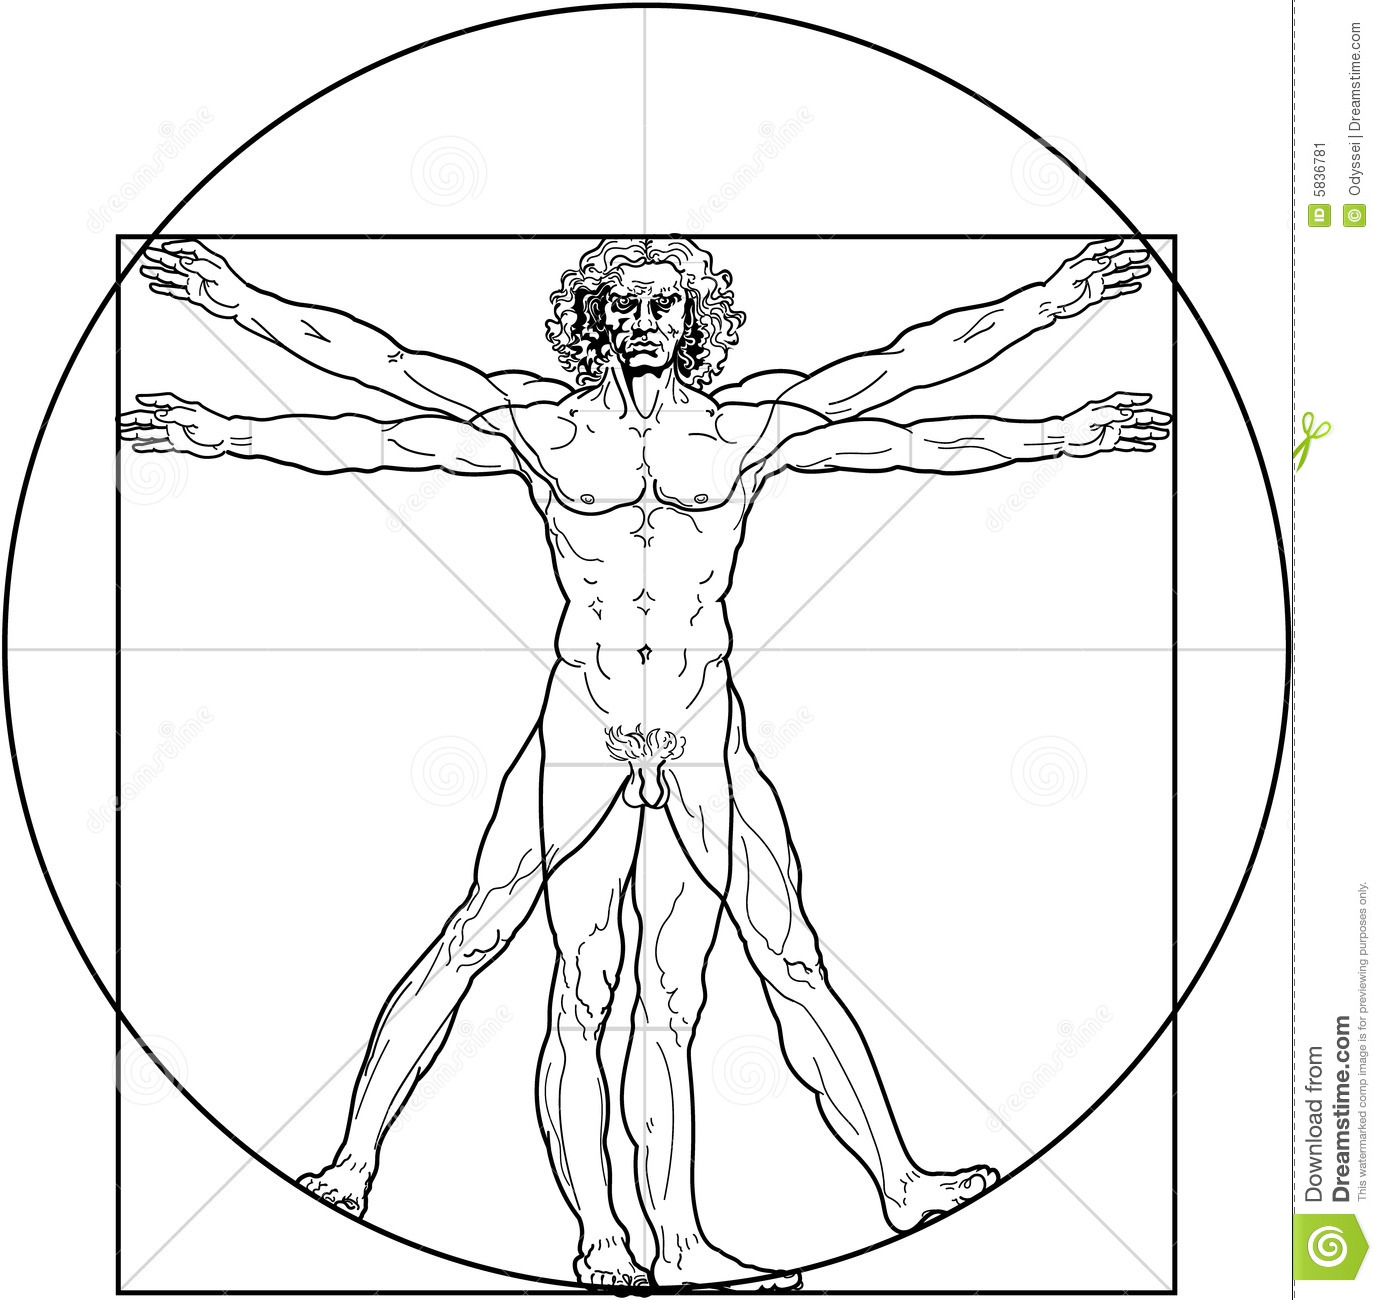 Stock Image Vitruvian Man Image5836781 moreover An Activity Priority Targets further D0 94 D1 96 D0 B0 D0 B3 D1 80 D0 B0 D0 BC D0 B0  D0 BF D1 80 D0 B5 D1 86 D0 B5 D0 B4 D0 B5 D0 BD D1 82 D1 96 D0 B2 furthermore Alignment likewise Meridians Toothbody Connection. on relationship diagram